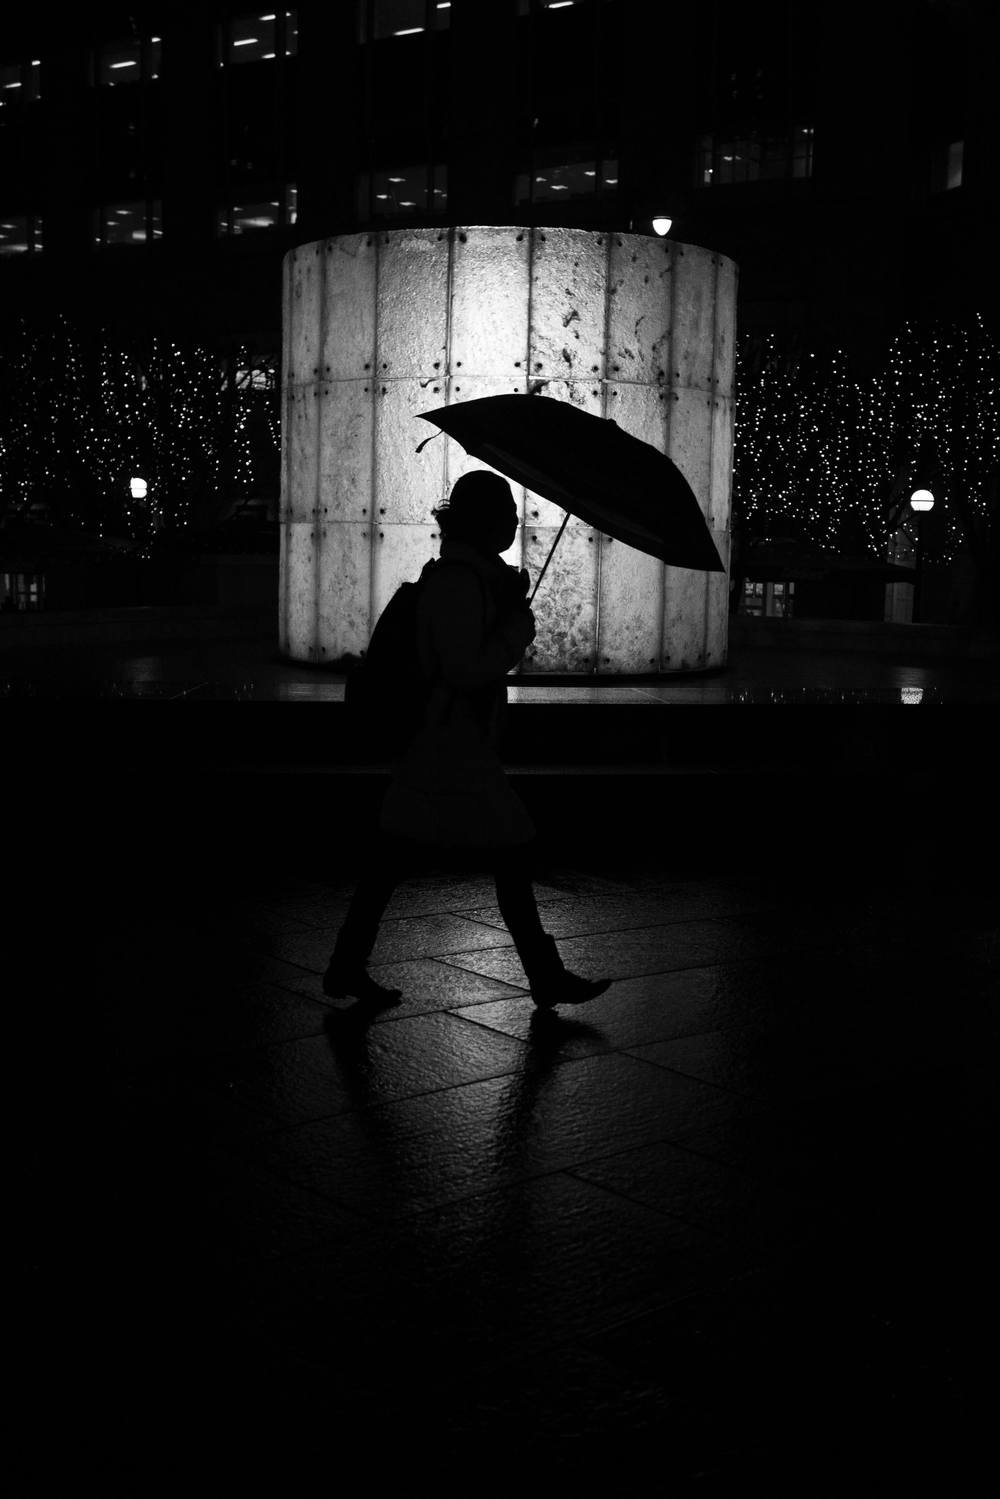 A silhouette taken in Canary Wharf in London.